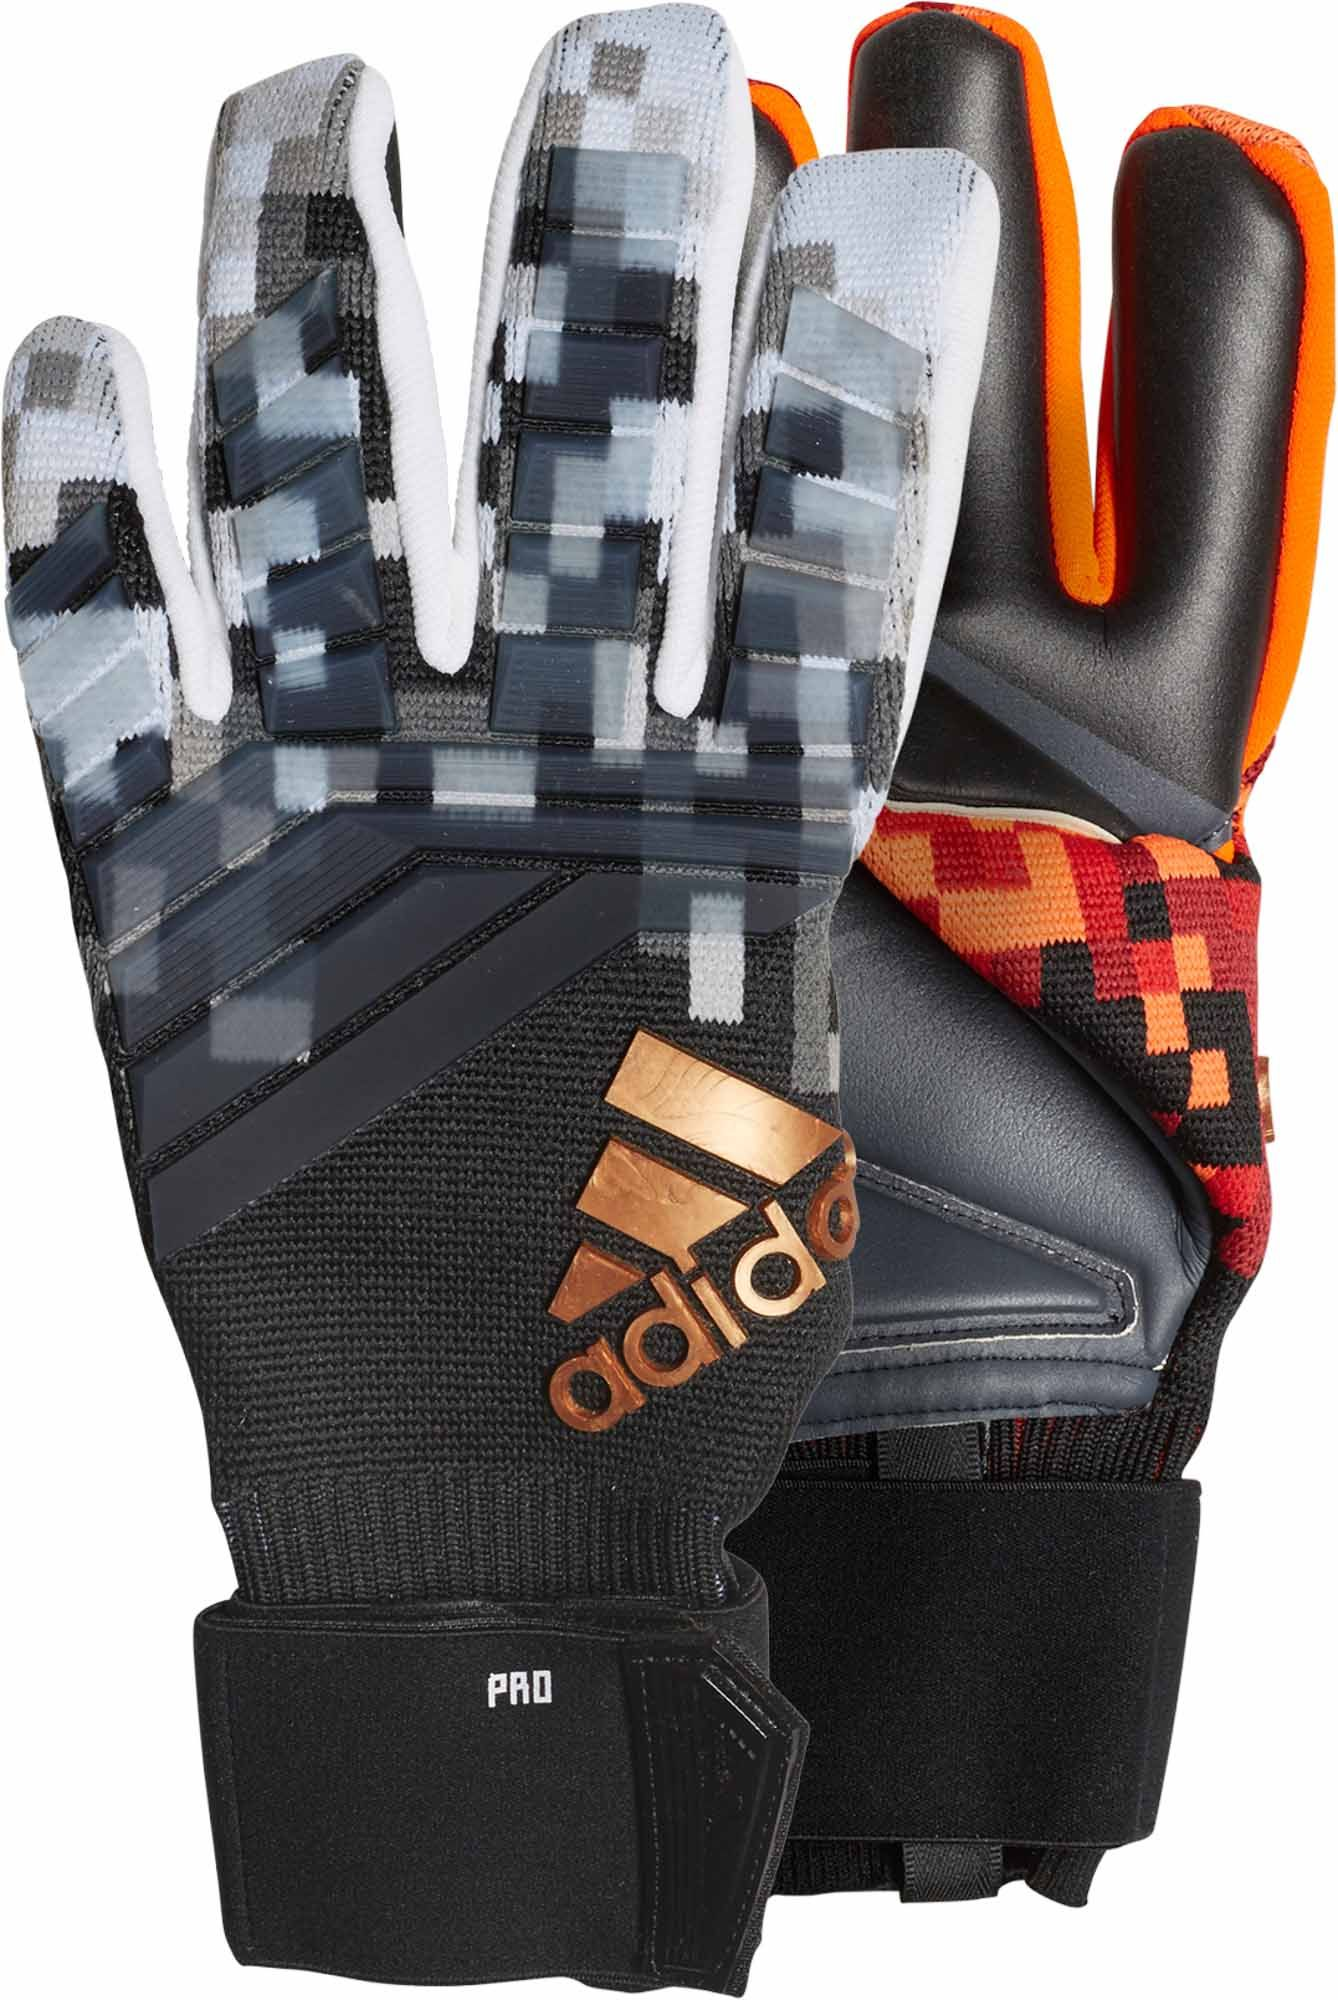 70a9331d0141f adidas Predator World Cup Goalie Gloves. Get these gloves from SoccerPro  right now.